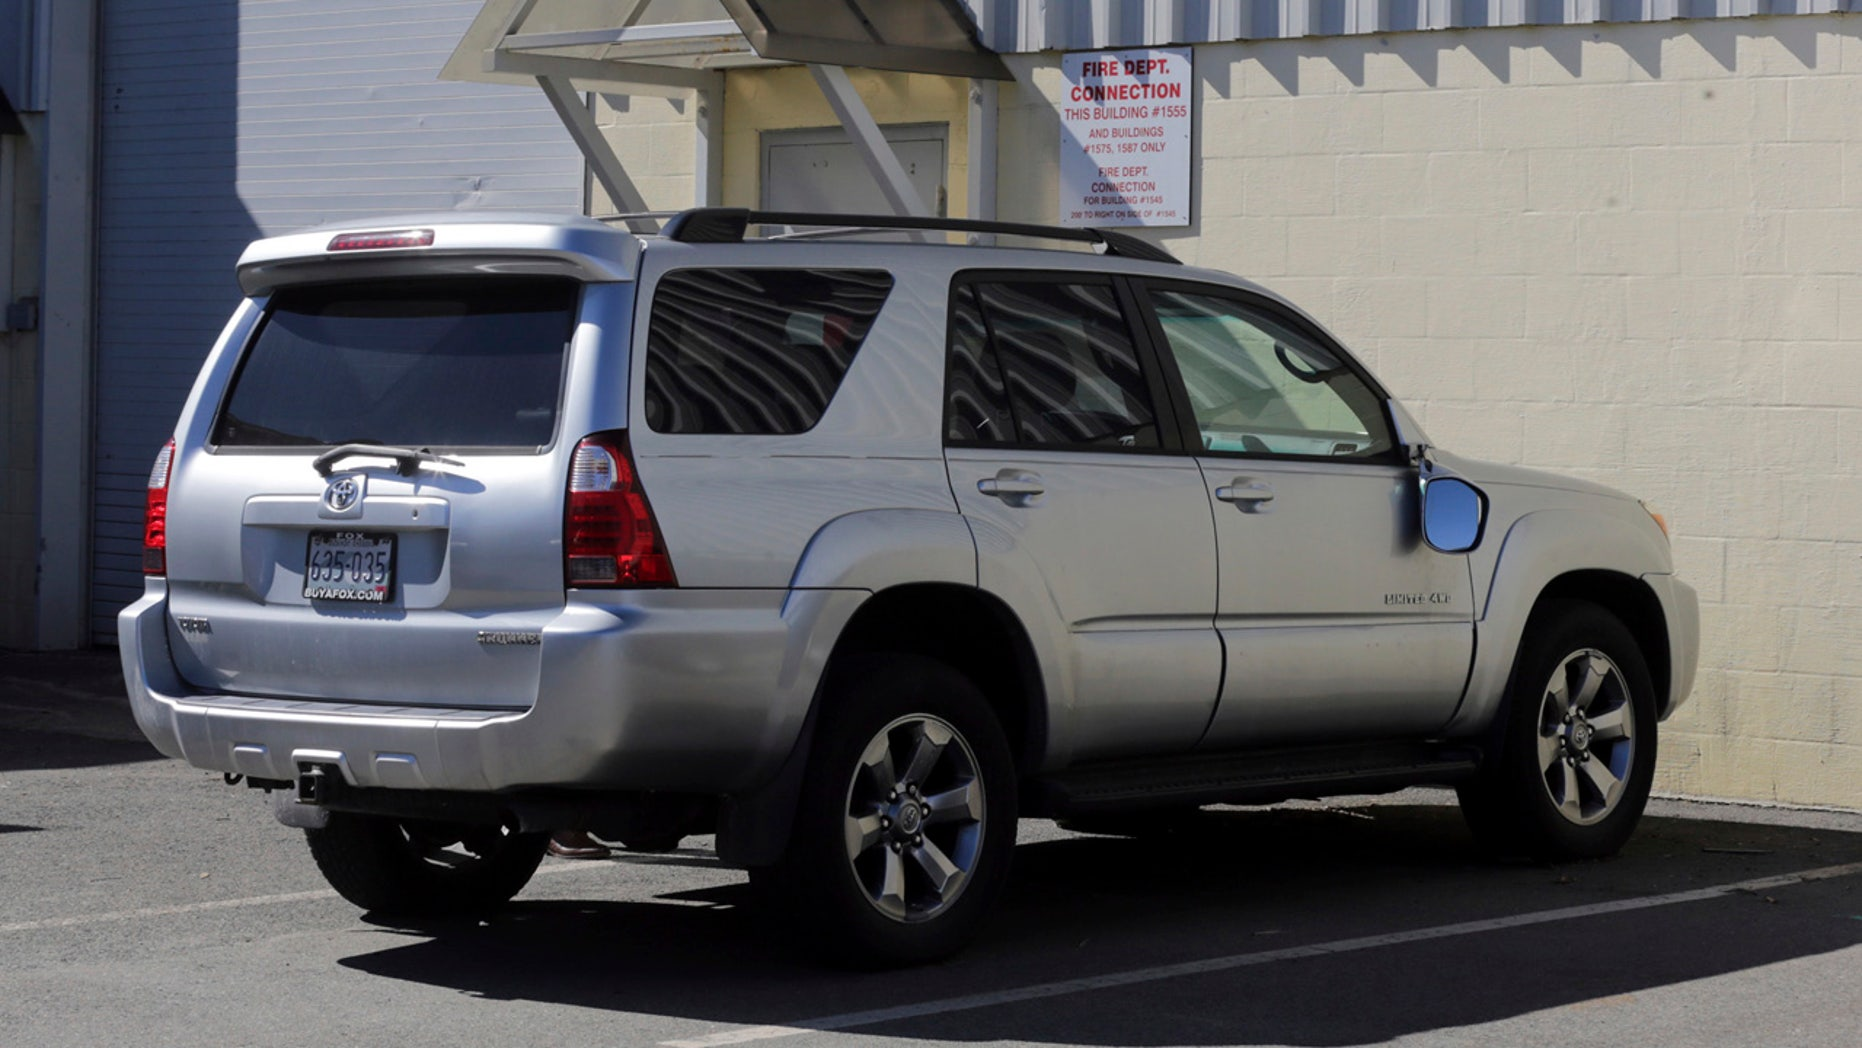 """In this March 3, 2017, file, photo, the Toyota 4Runner held in a Boston Police evidence lot in the Hyde Park neighborhood of Boston is seen during a """"view"""" of pertinent locations and evidence in the Aaron Hernandez trial."""